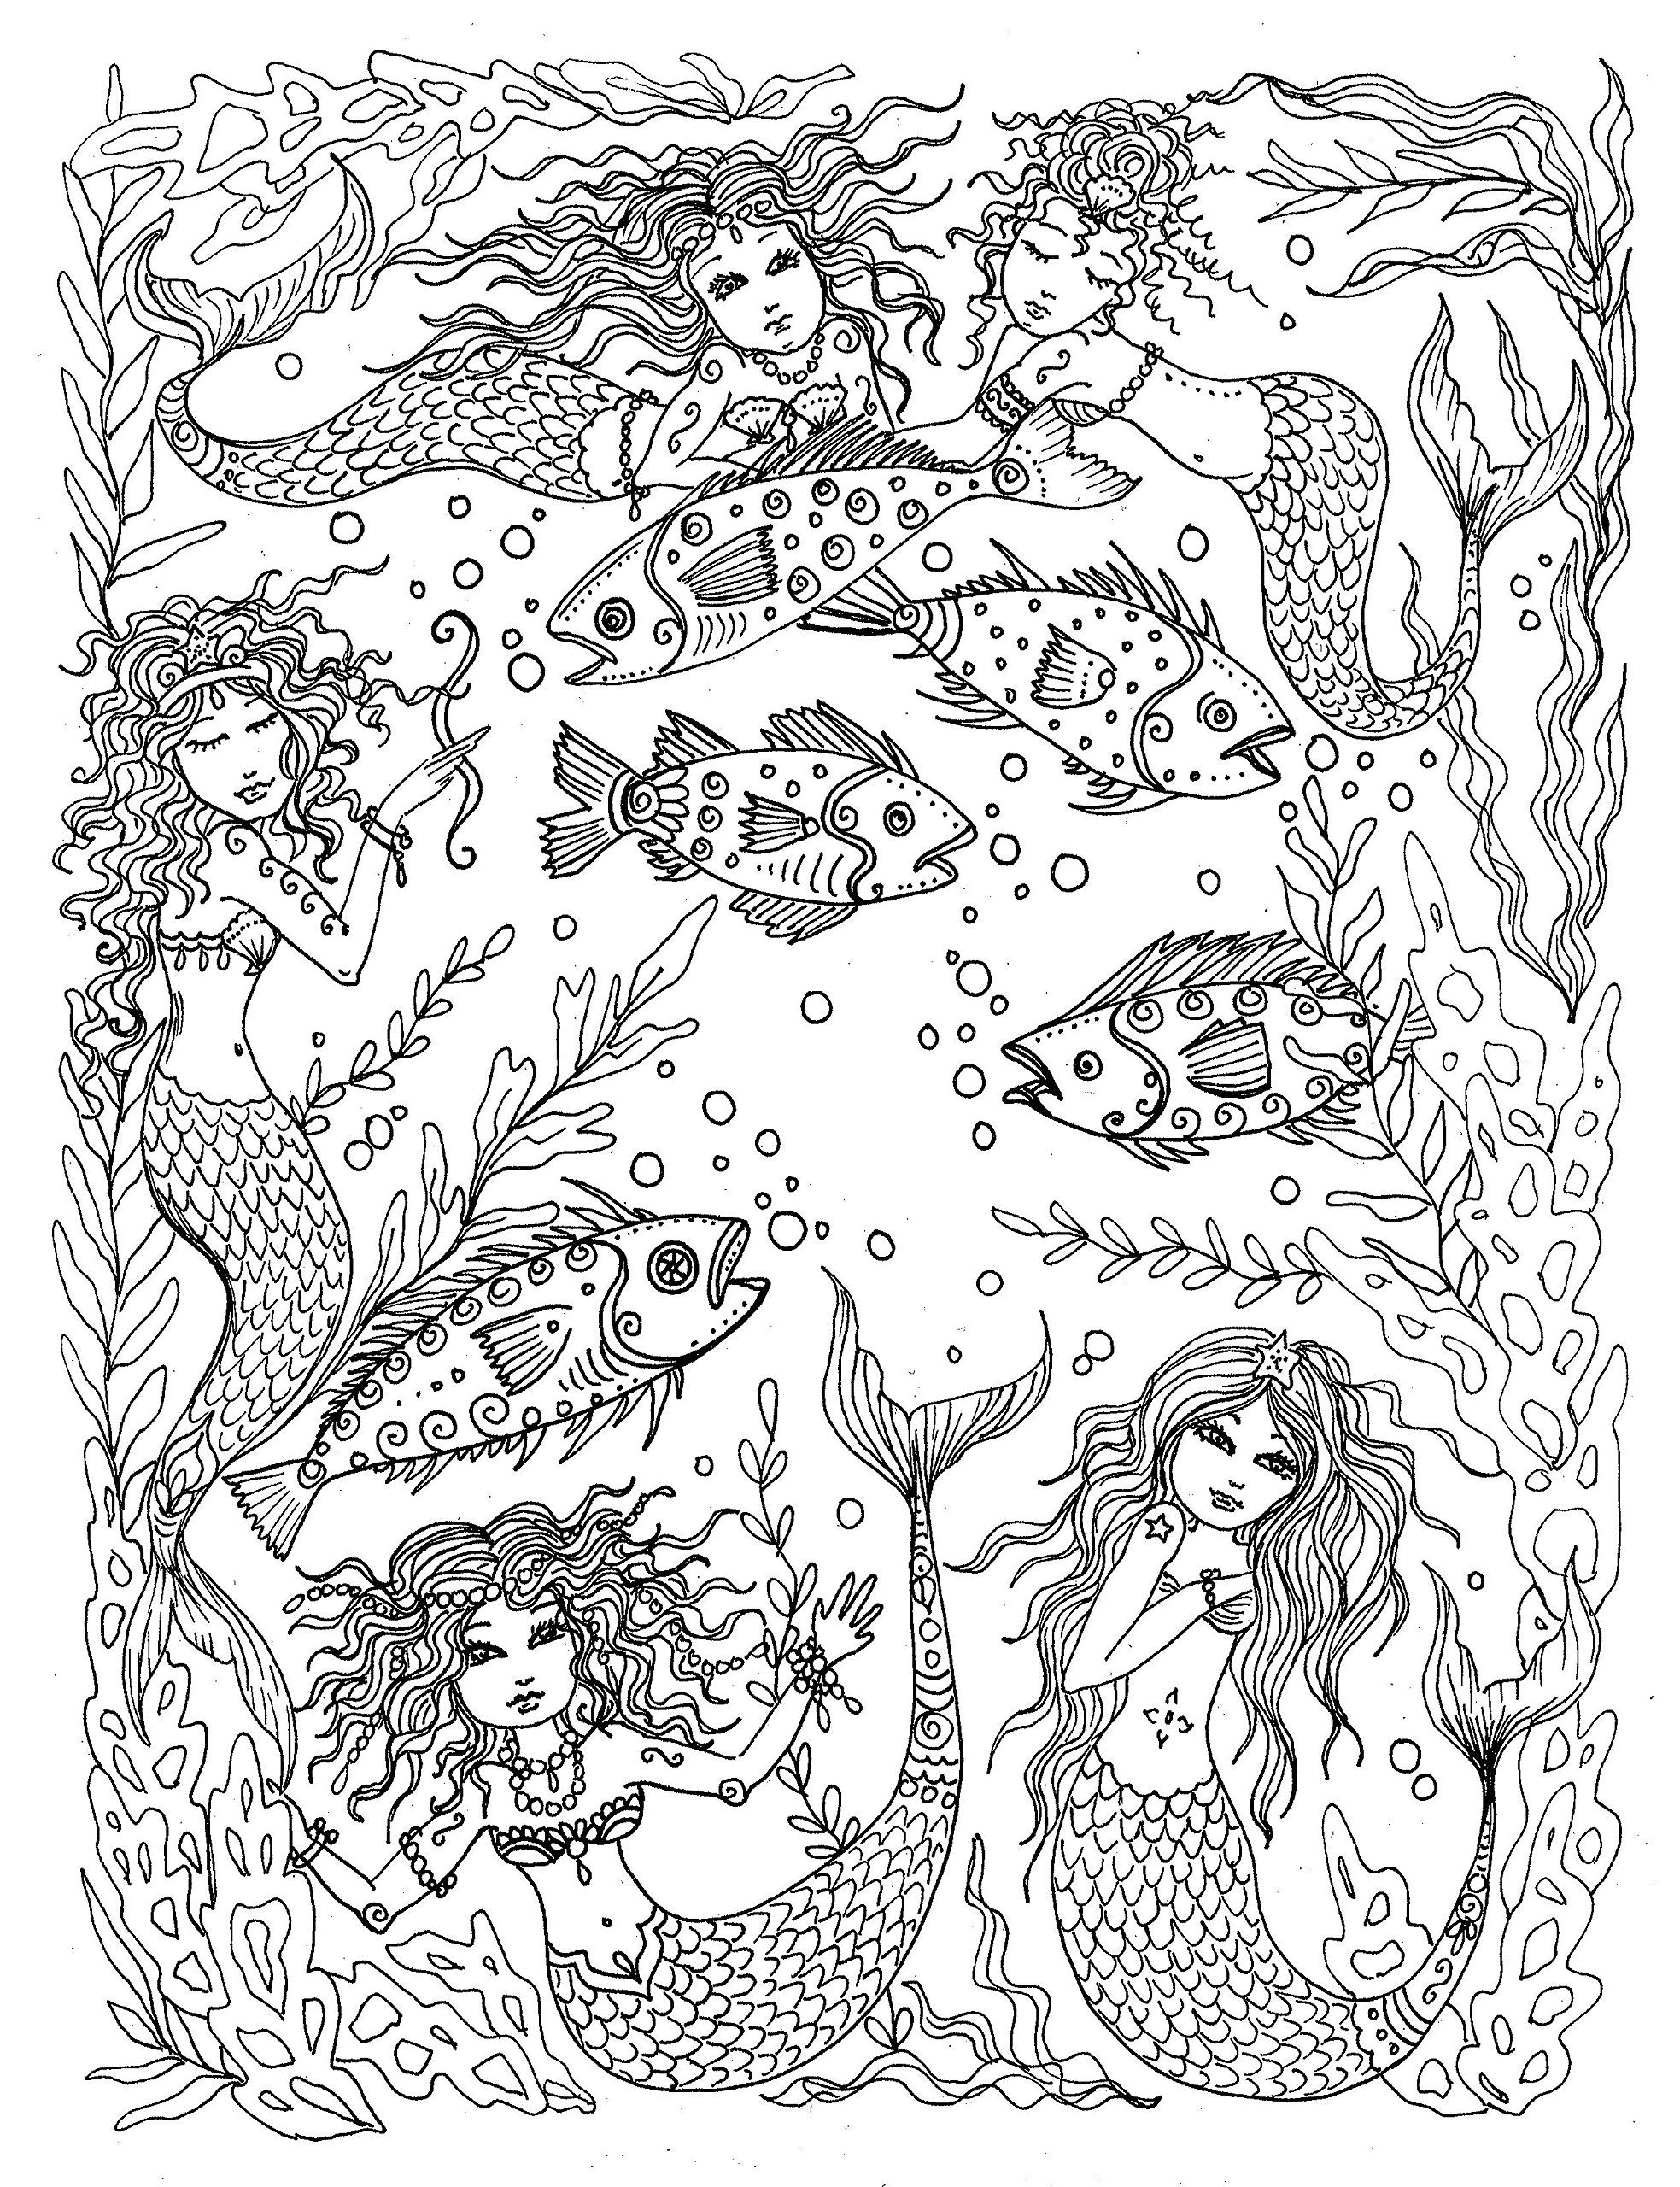 Under the sea coloring book for adults - Under The Sea Fantasy Art To Color And Hang Adult Coloring Book You Be The